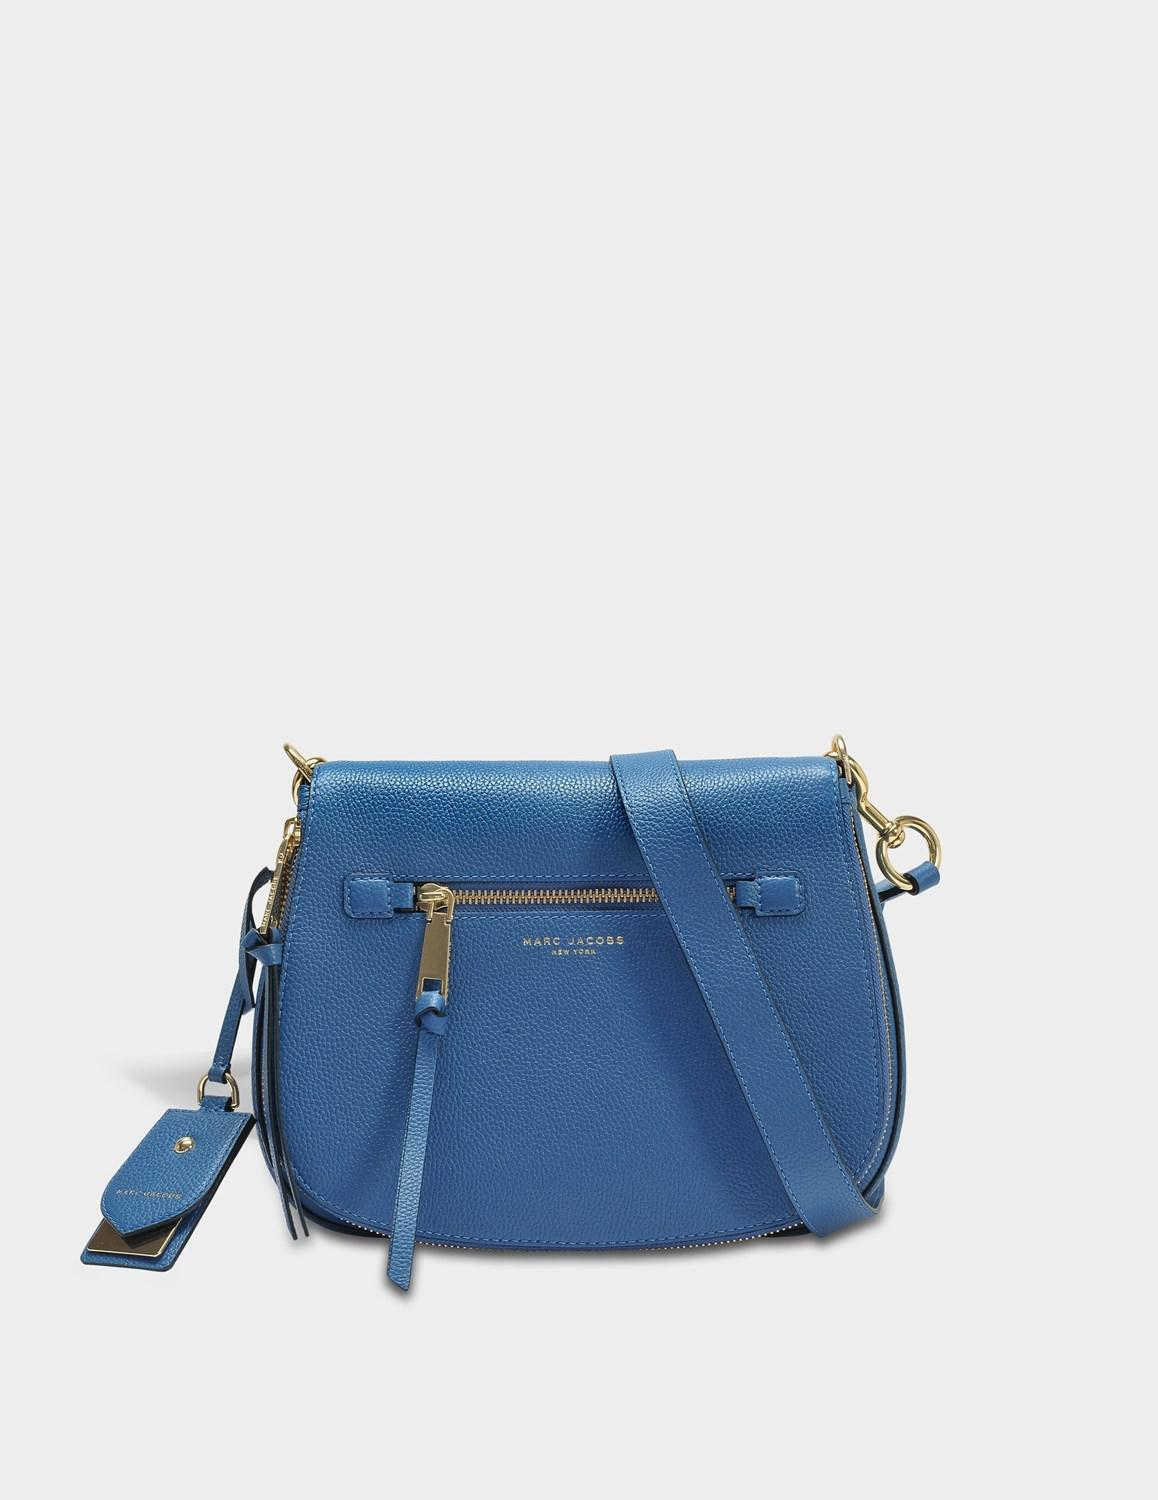 4a105393822b Lyst - Marc Jacobs Recruit Nomad Crossbody Bag In Vintage Blue Cow ...